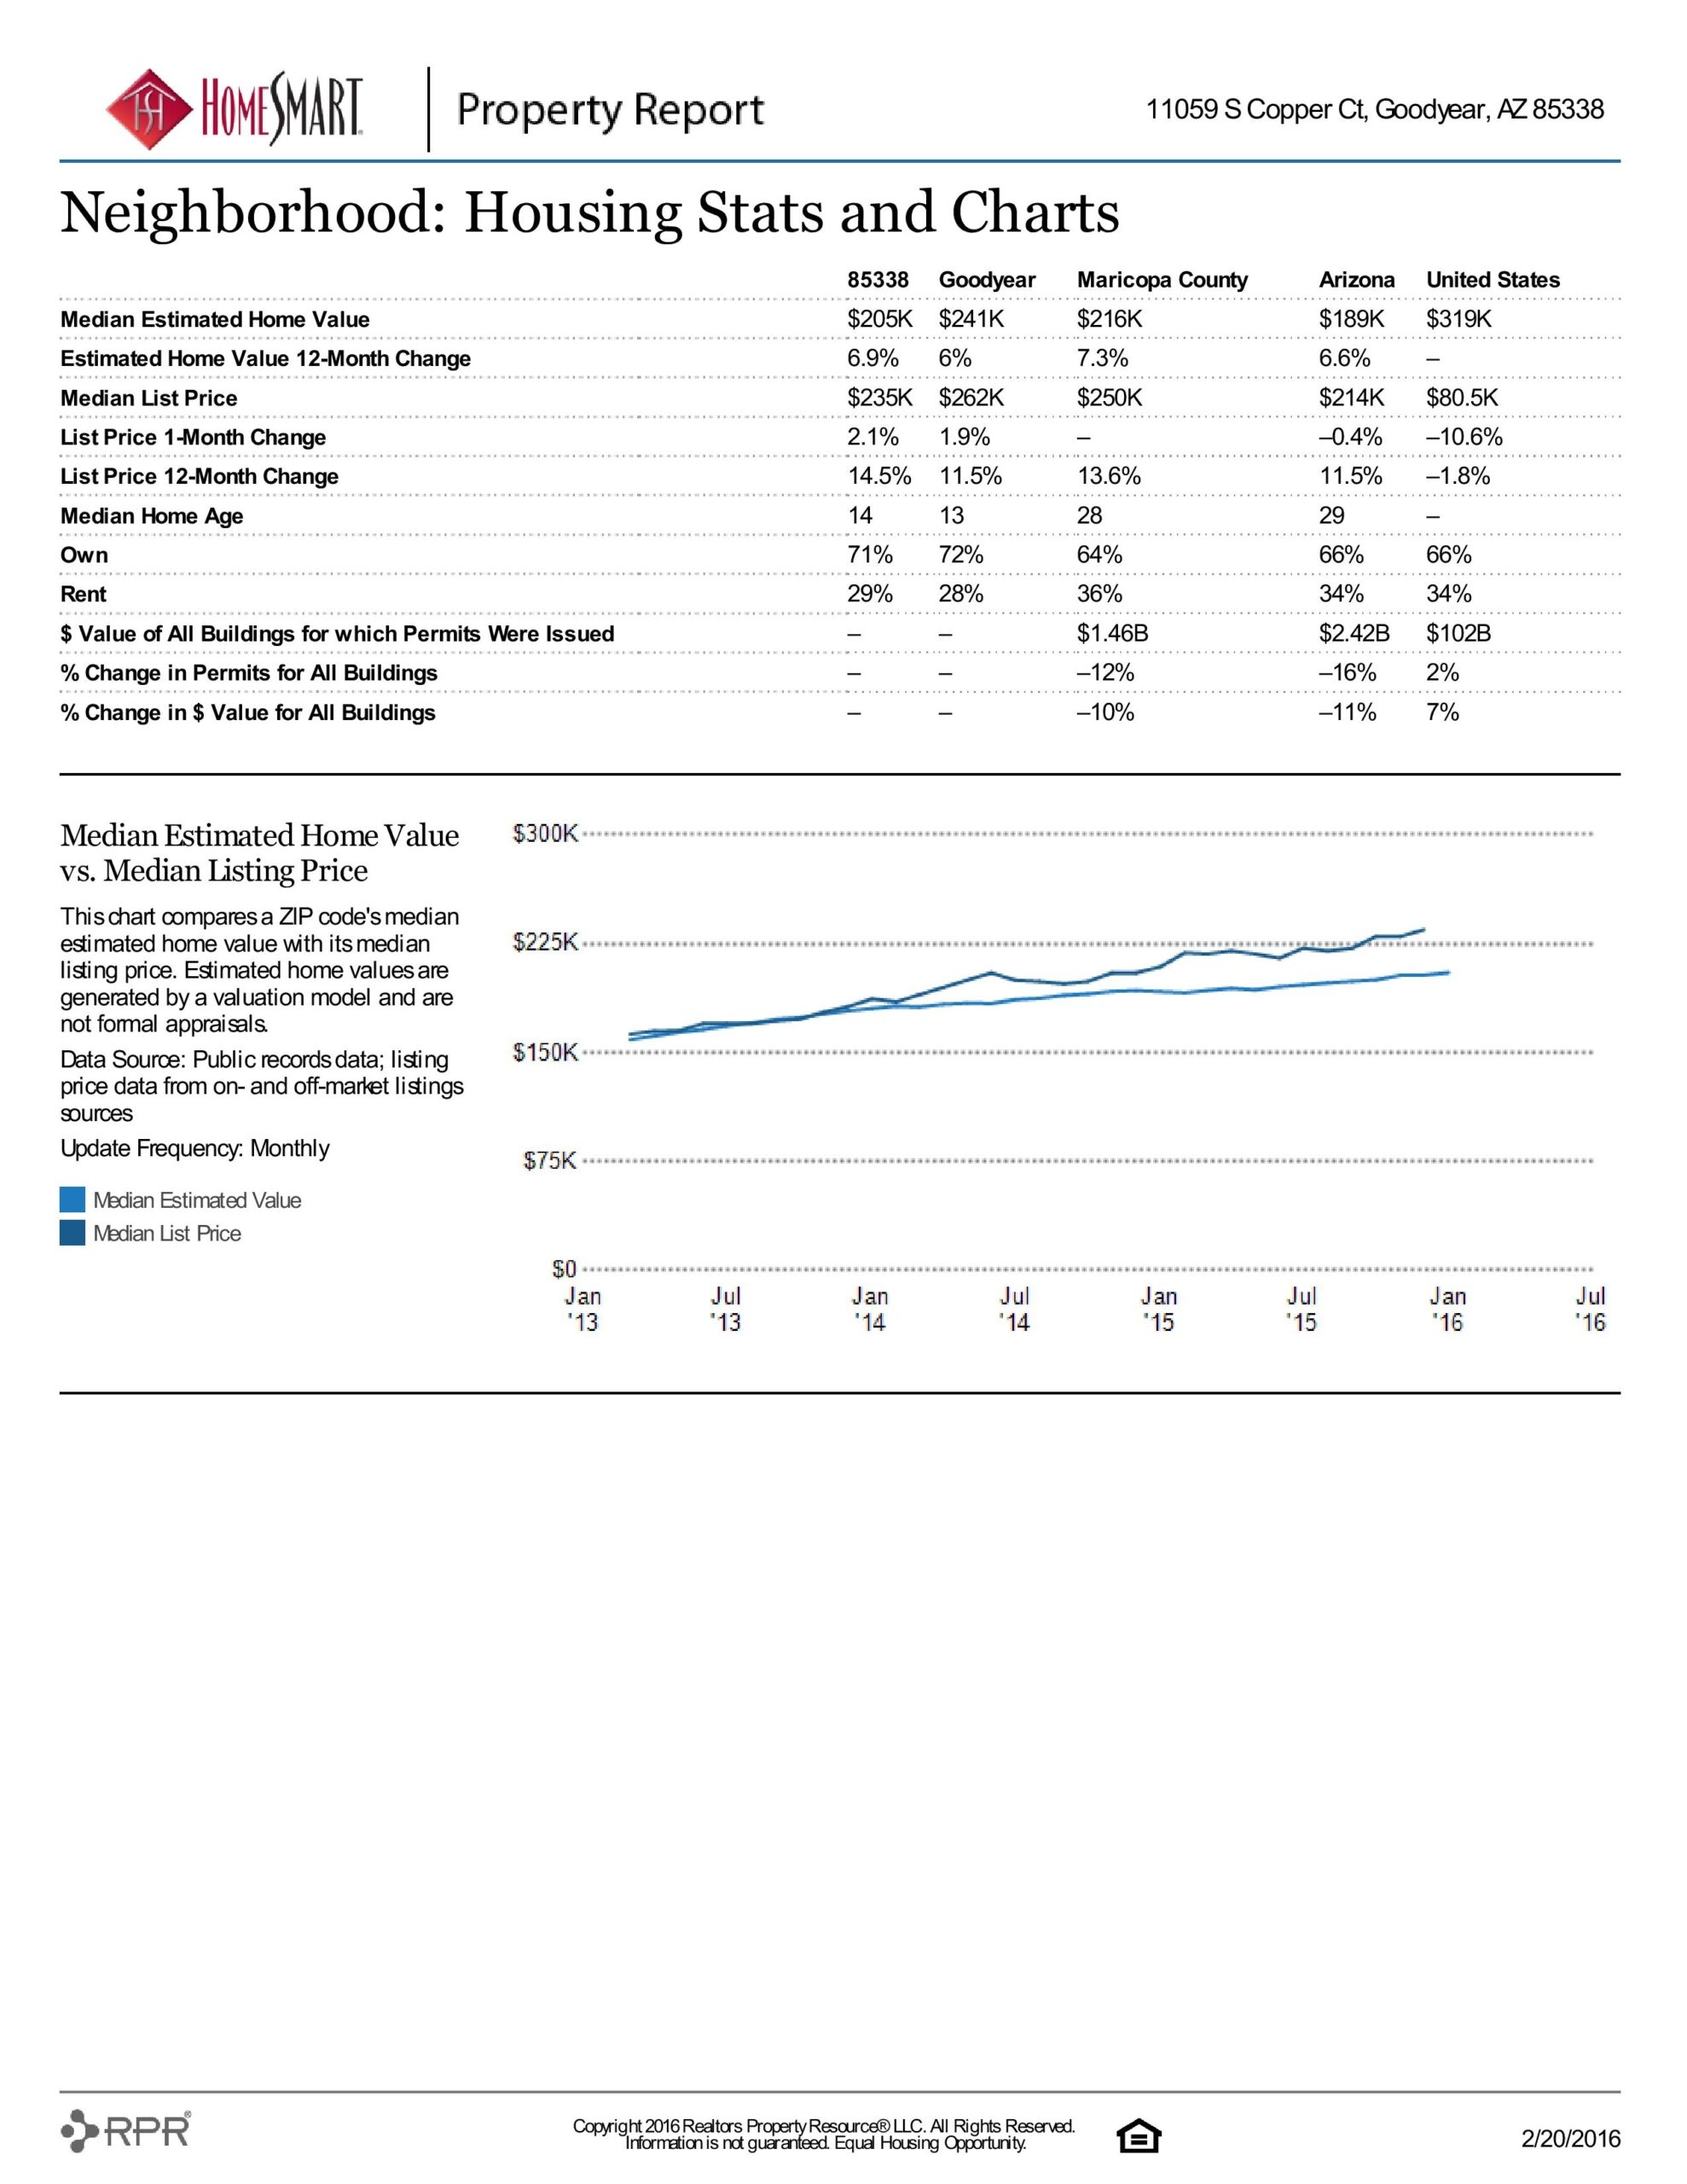 11059 S COPPER CT PROPERTY REPORT-page-017